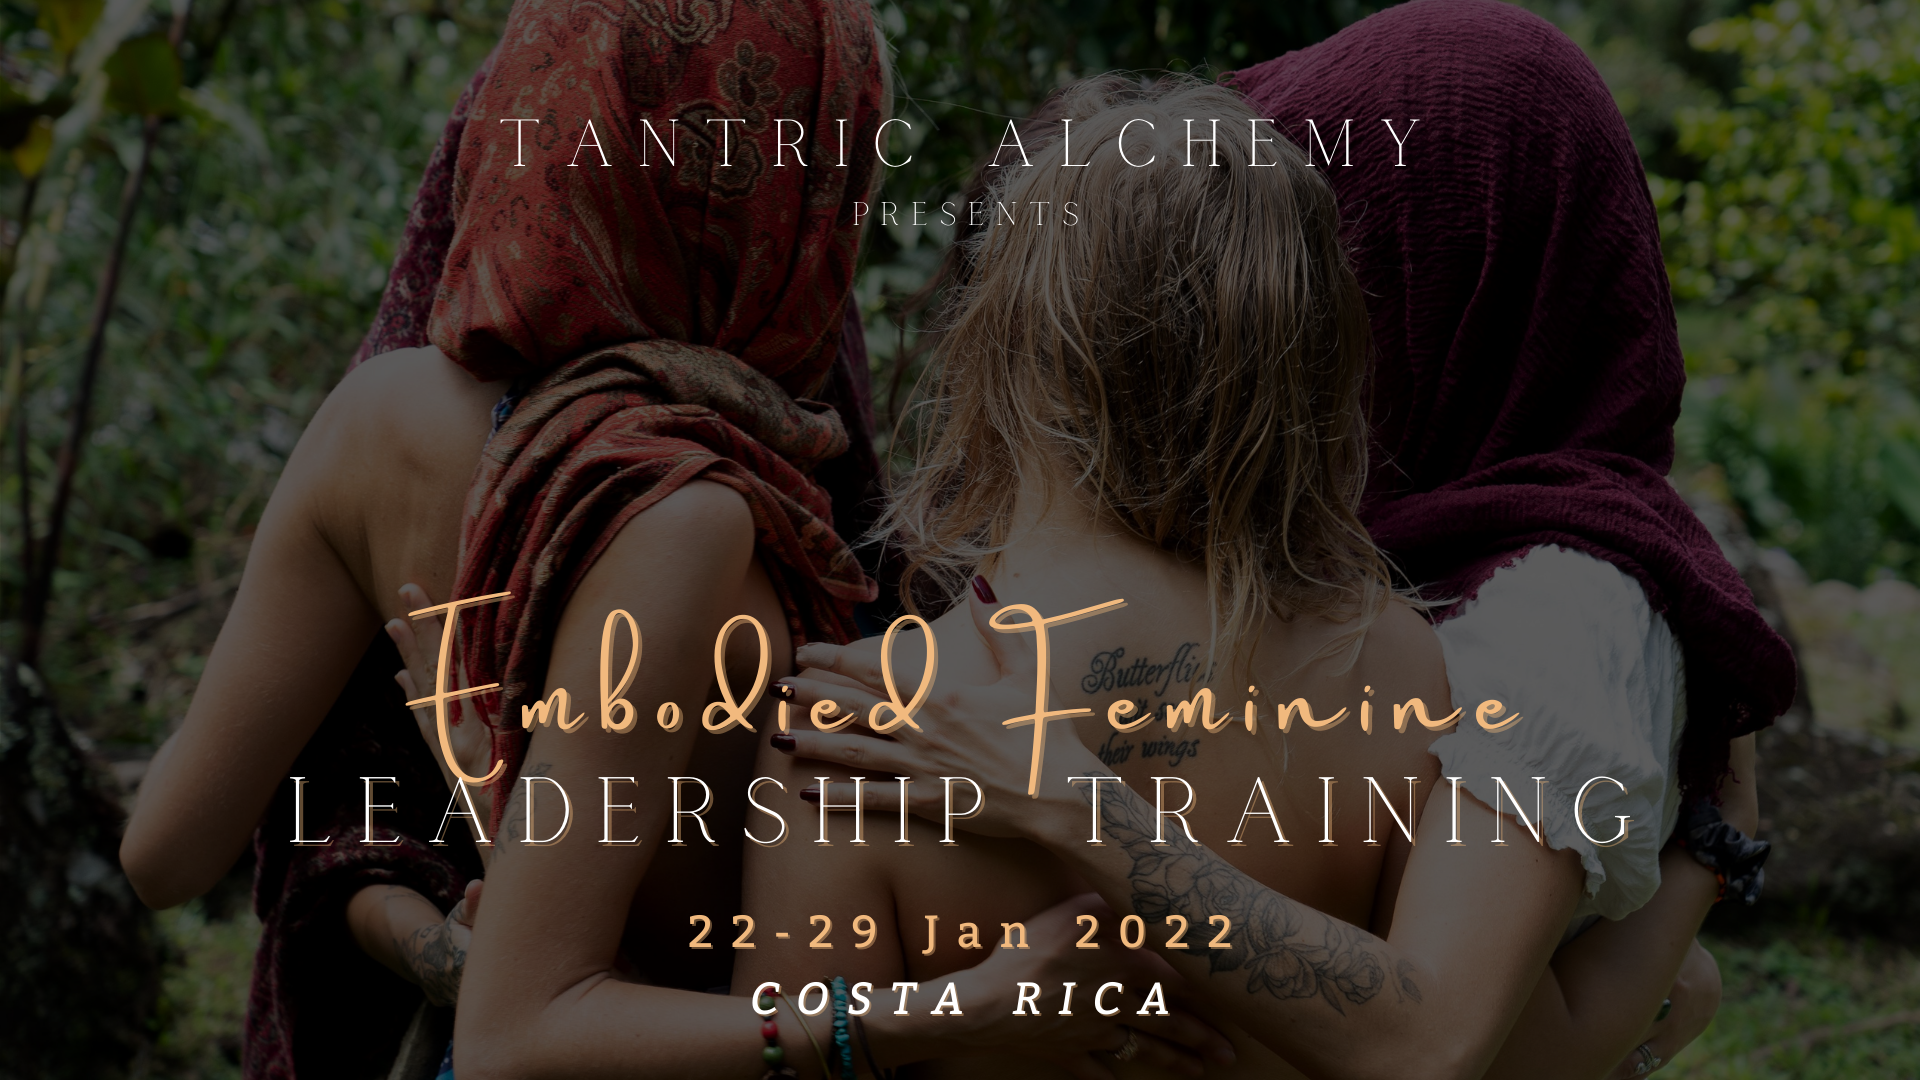 The Journey to Femininity: One Woman's Emotional Journey to Authentic Femininity